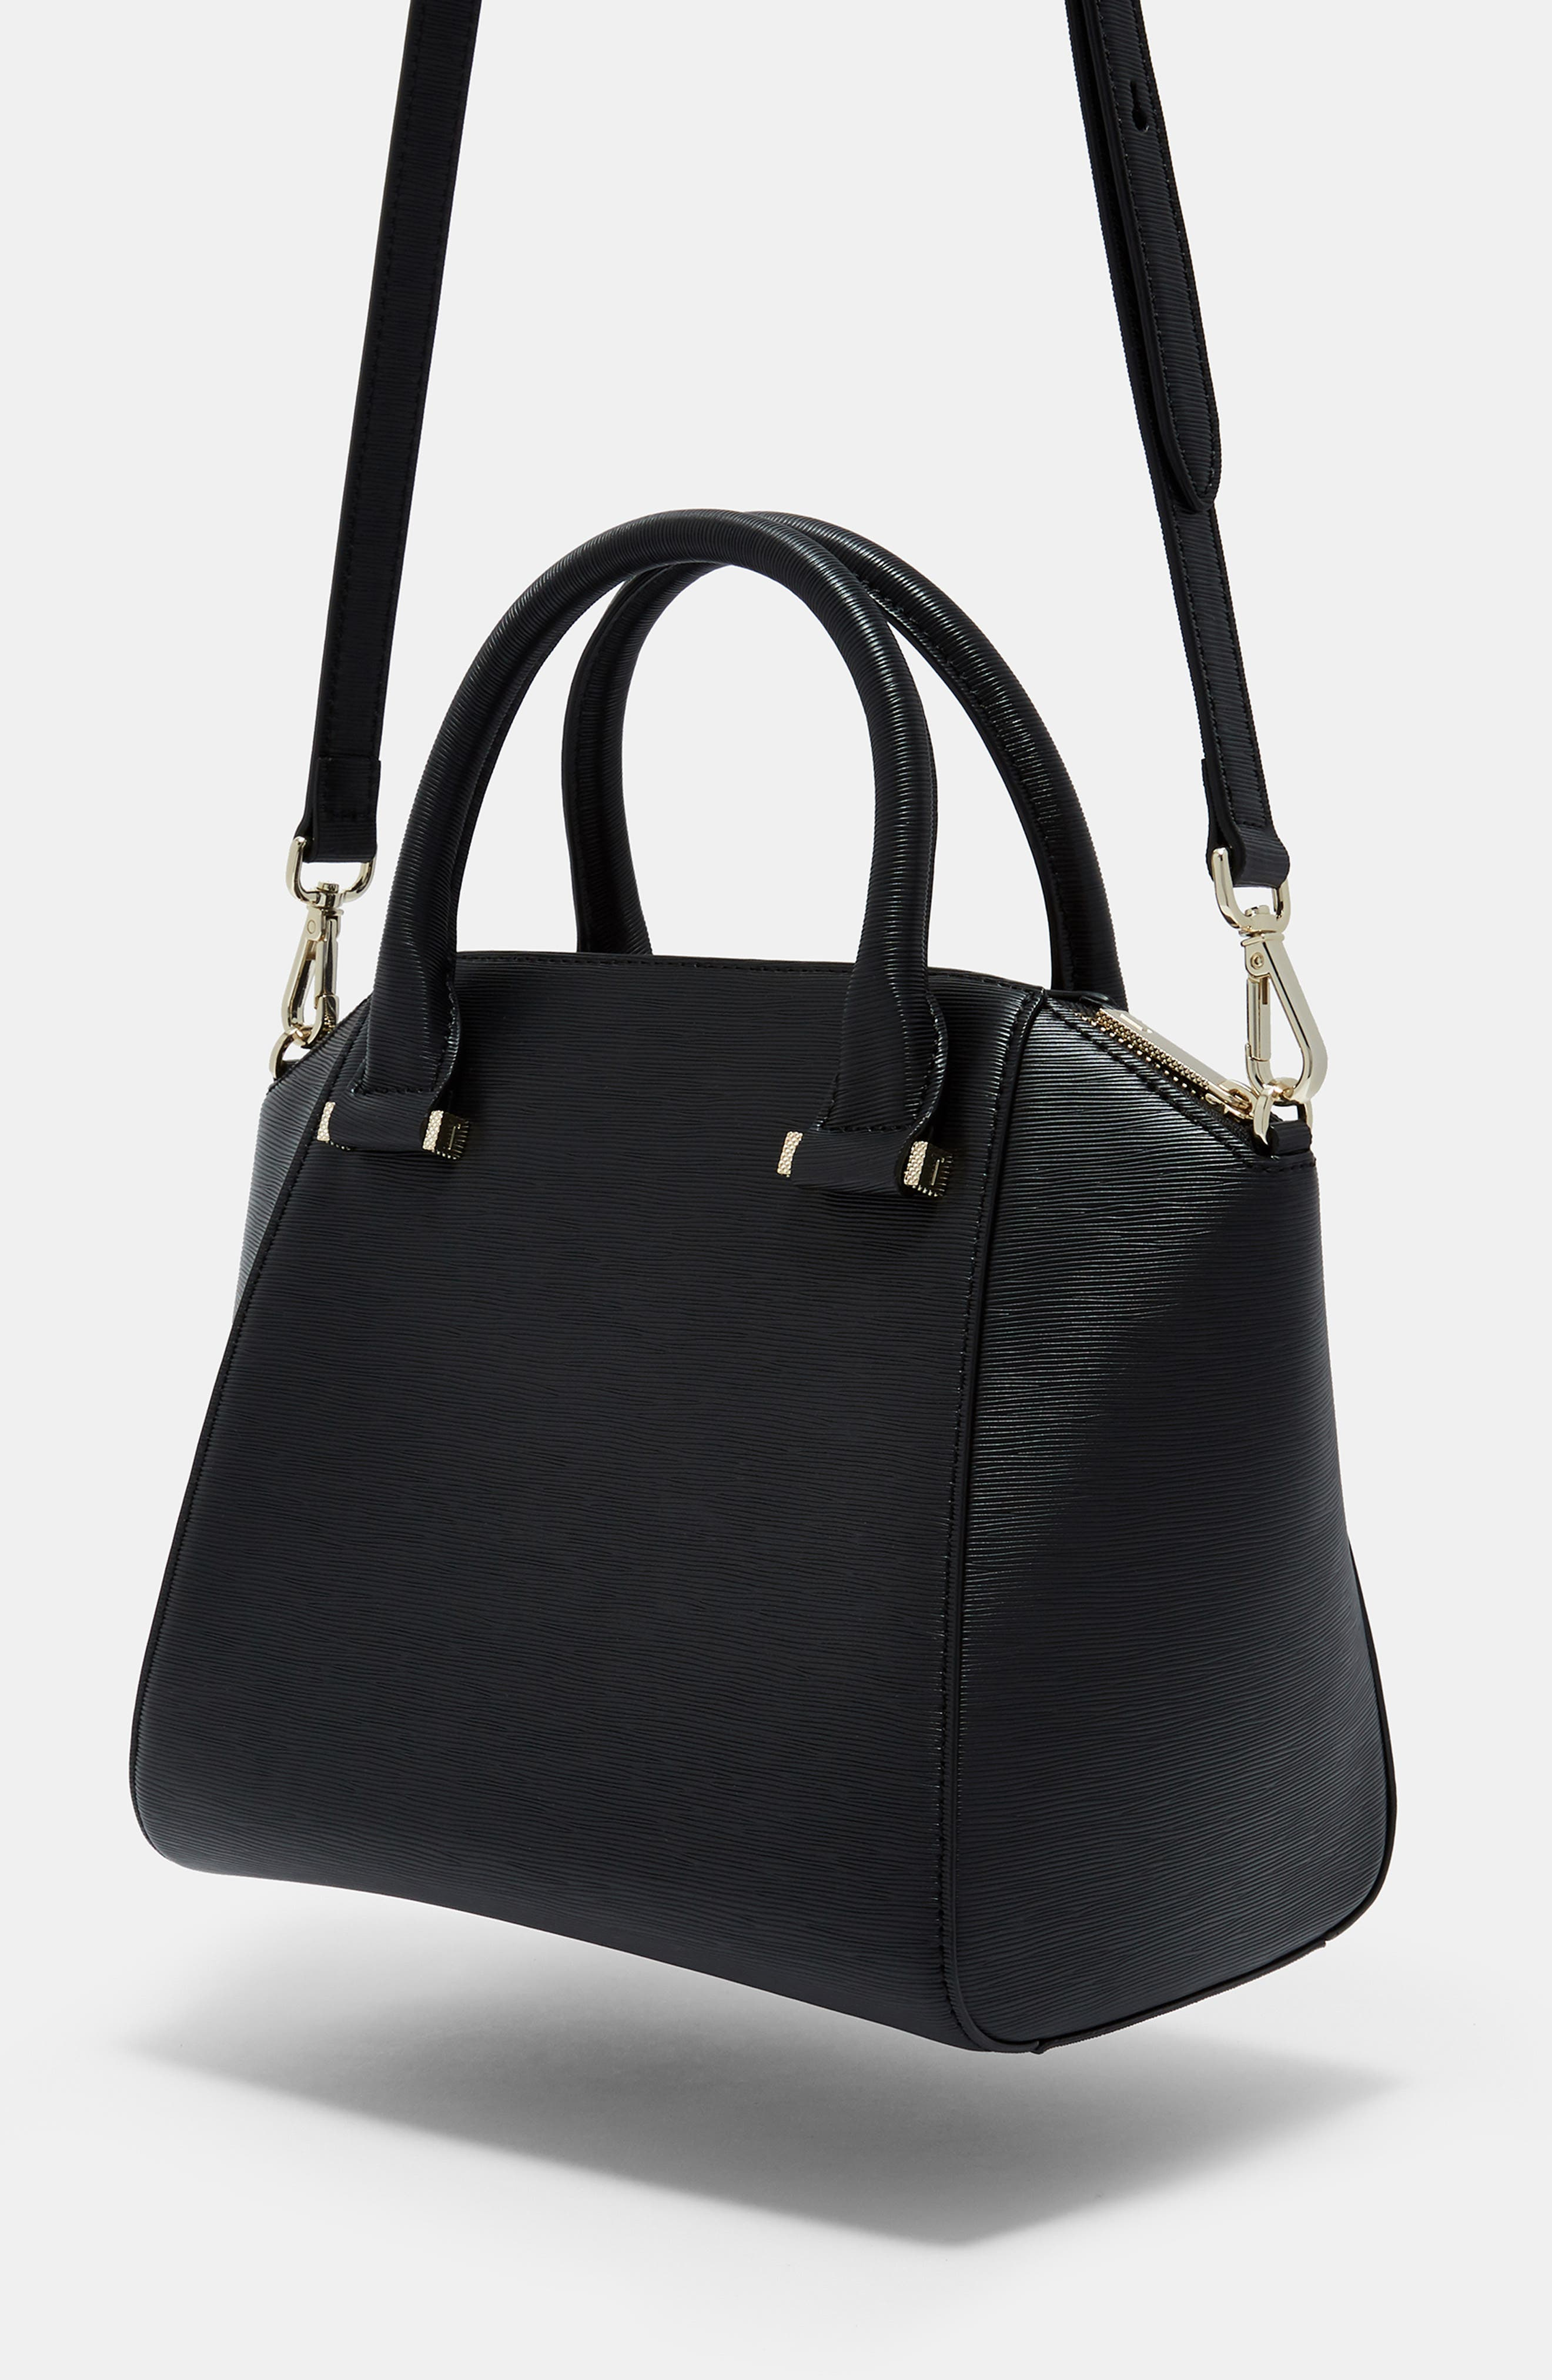 TED BAKER LONDON, Bow Tote, Alternate thumbnail 6, color, 001